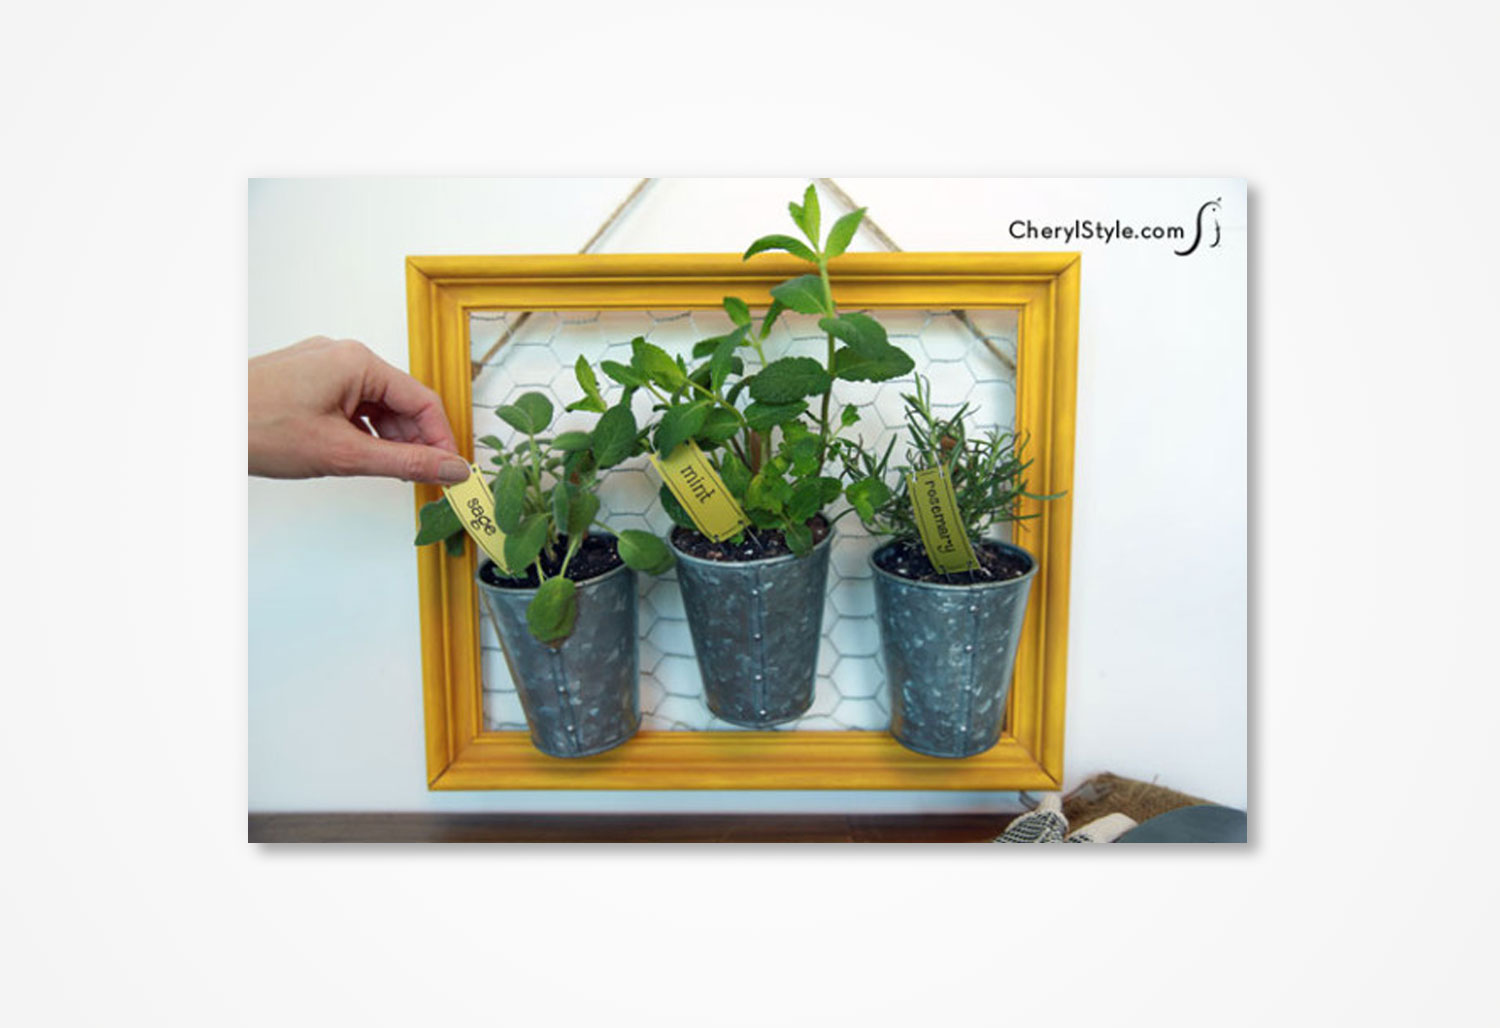 cs-window-frame-herb-garden.jpg